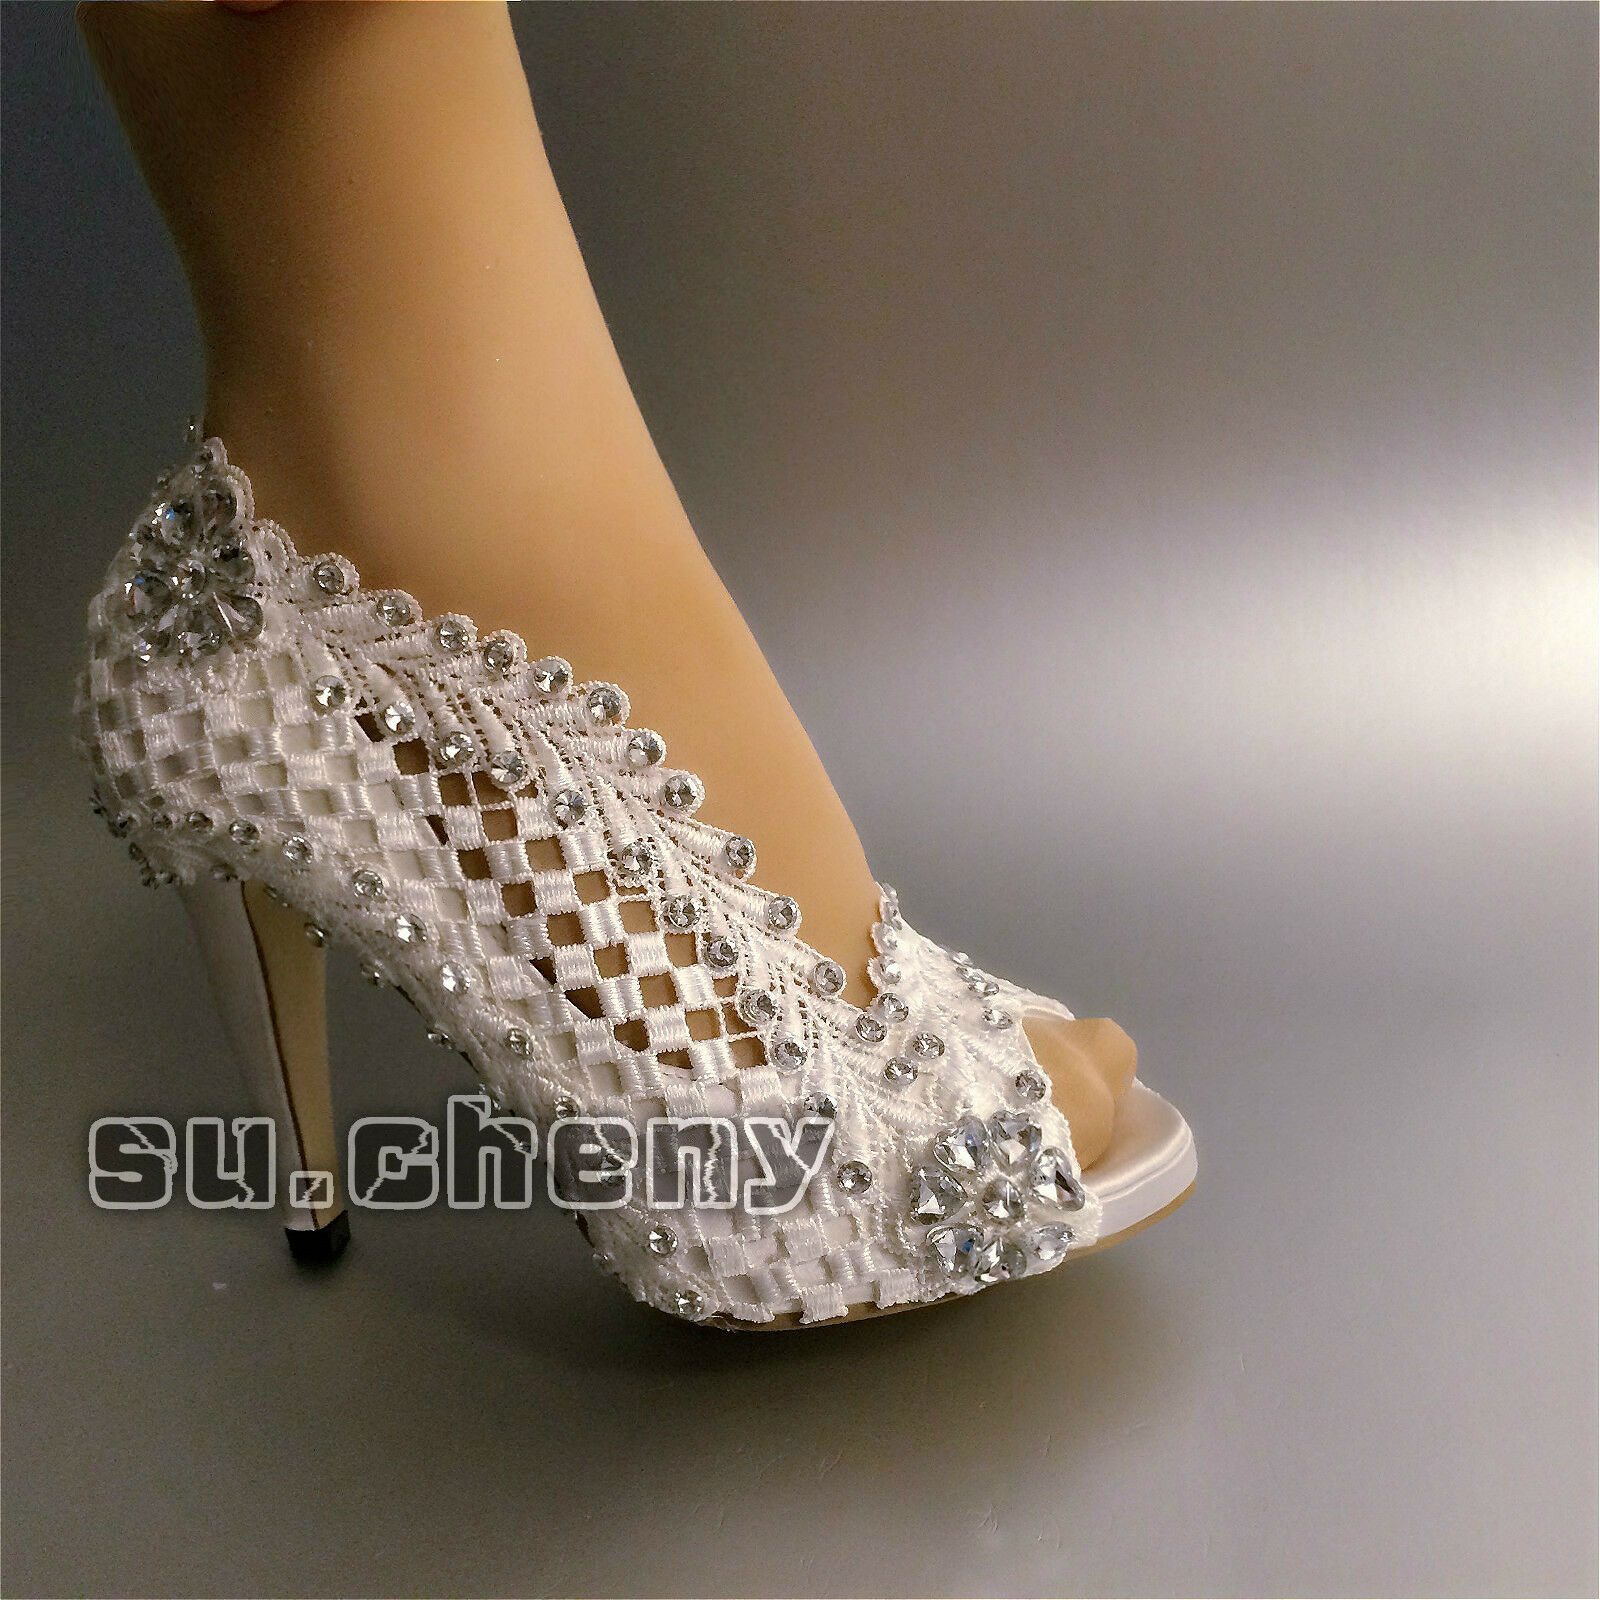 "Su.cheny 3  4"" heel Weiß ivory ivory ivory silk satin lace open toe Wedding Bridal schuhe a7458d"